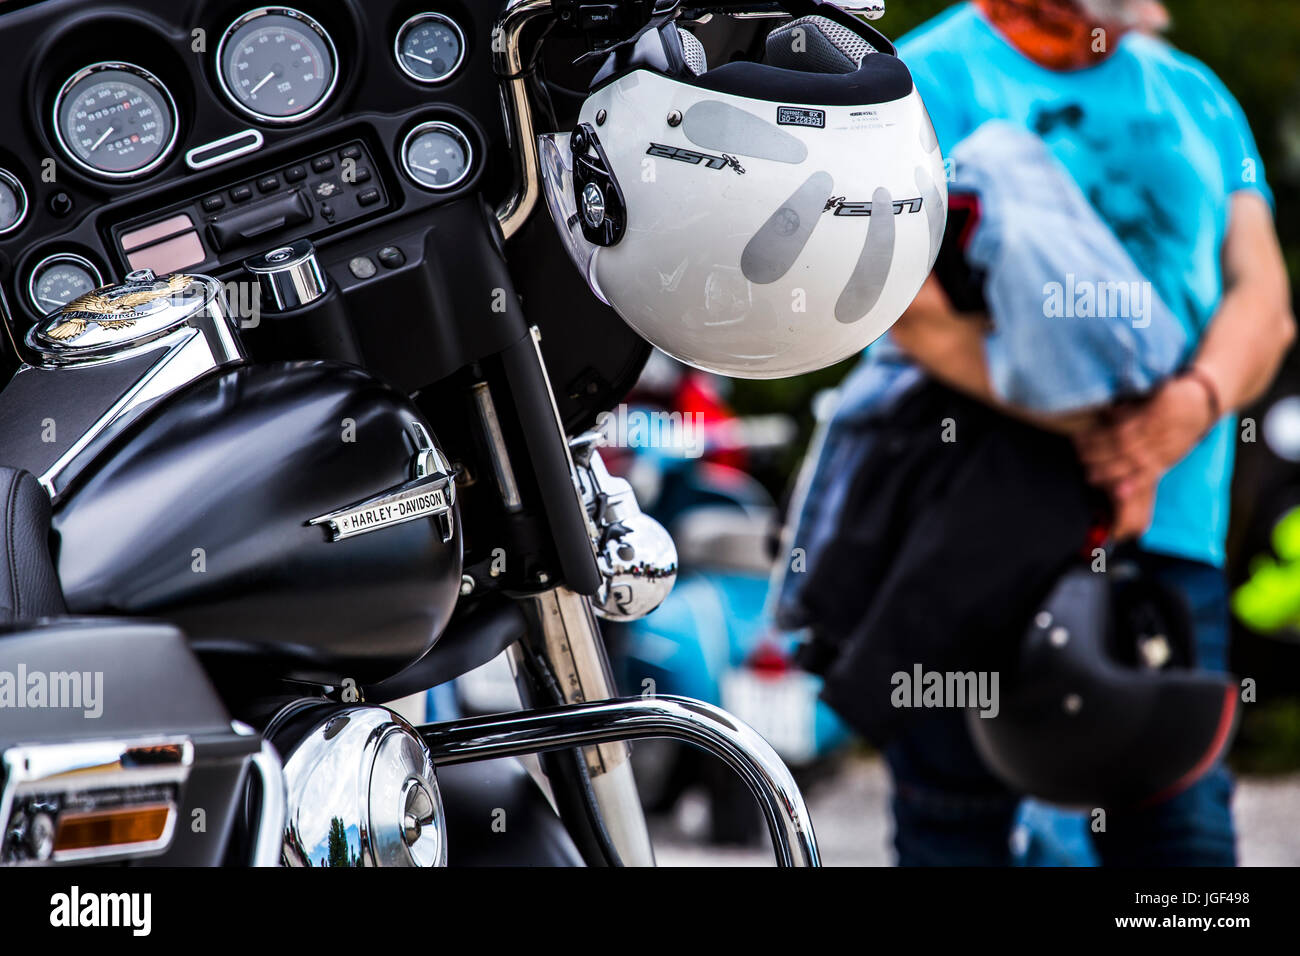 White helmet hanging on the handlebar of a Harley Davidson Electra Glide. - Stock Image